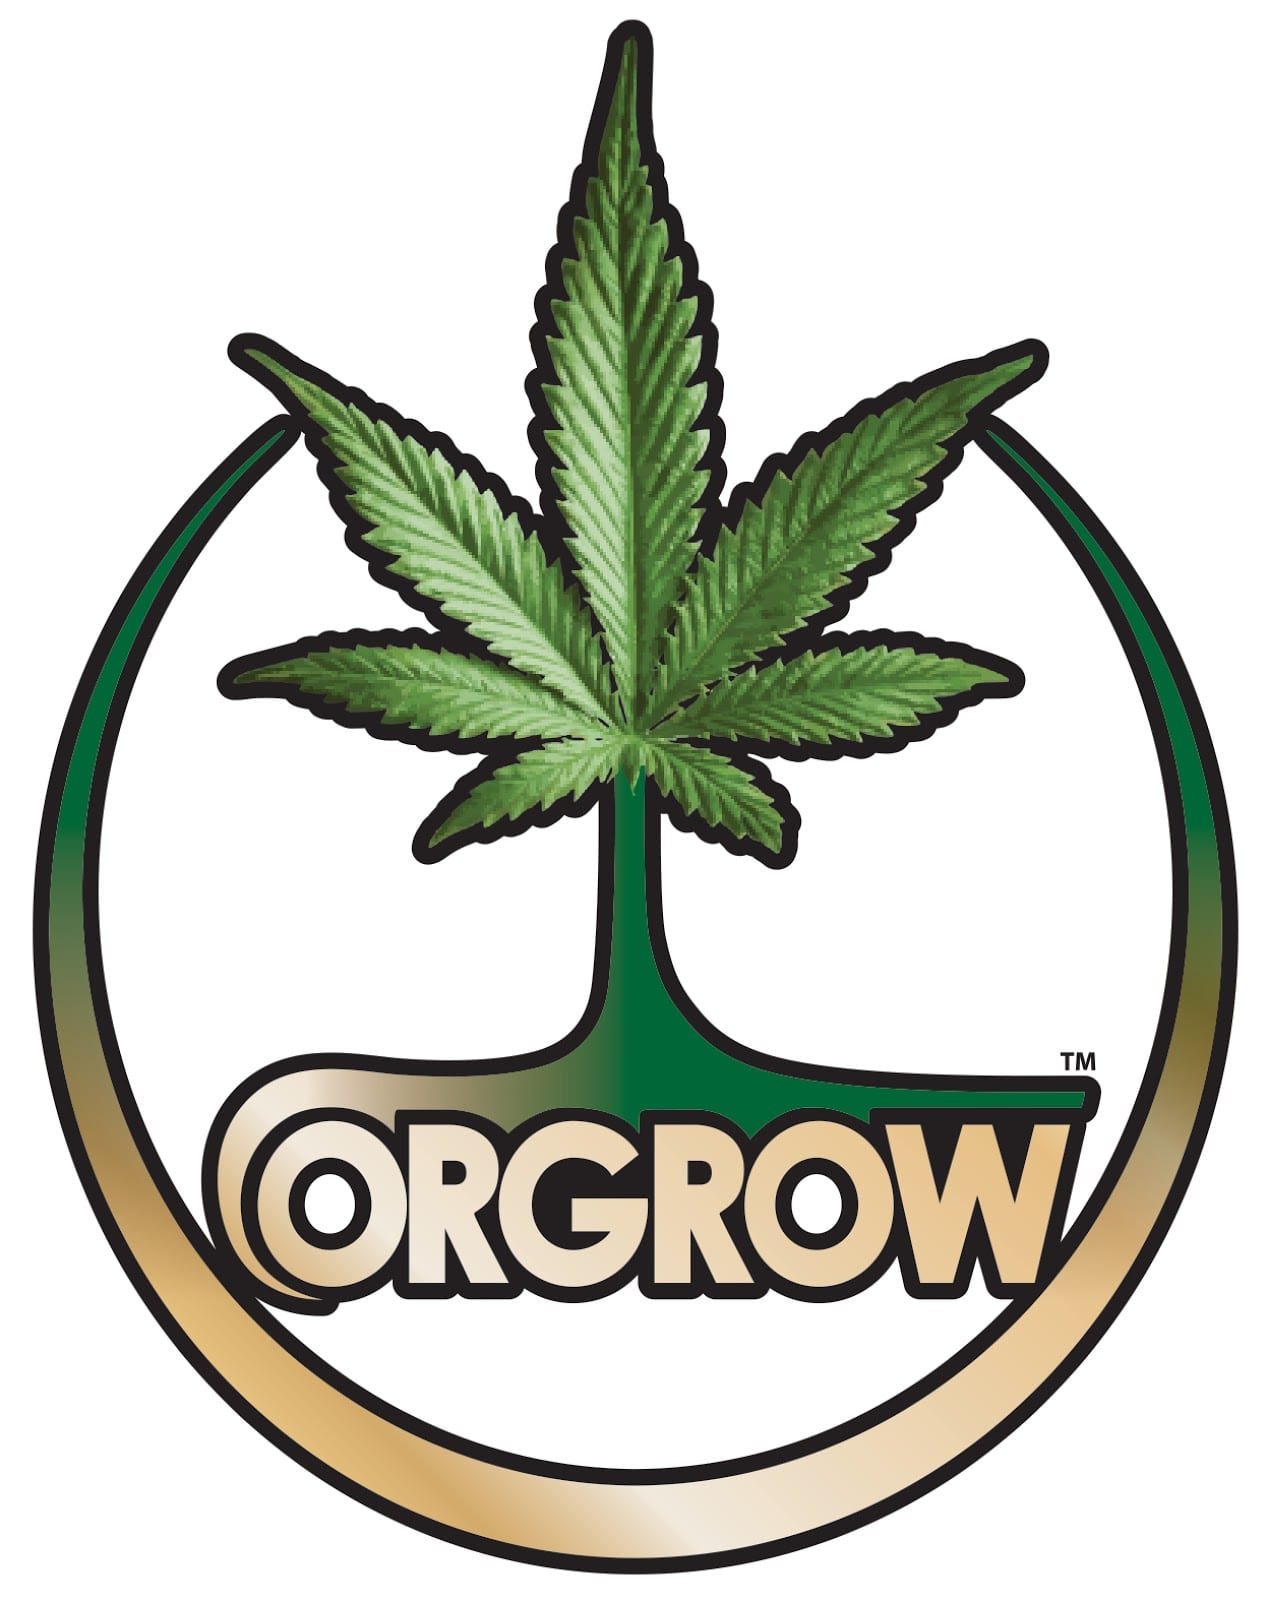 https://northbaymarijuana.com/wp-content/uploads/2018/12/LOGO_Orgrow_2017.jpg